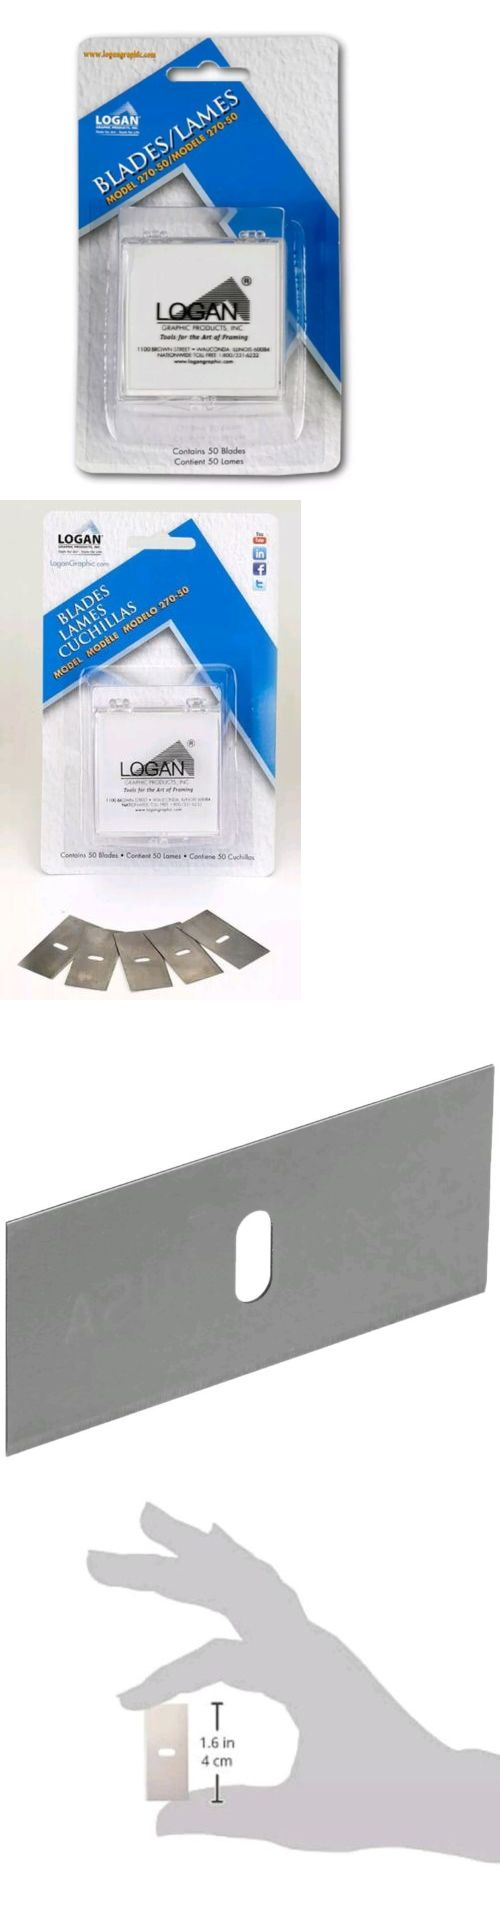 Pin On Mat Cutting Tools And Supplies 37574